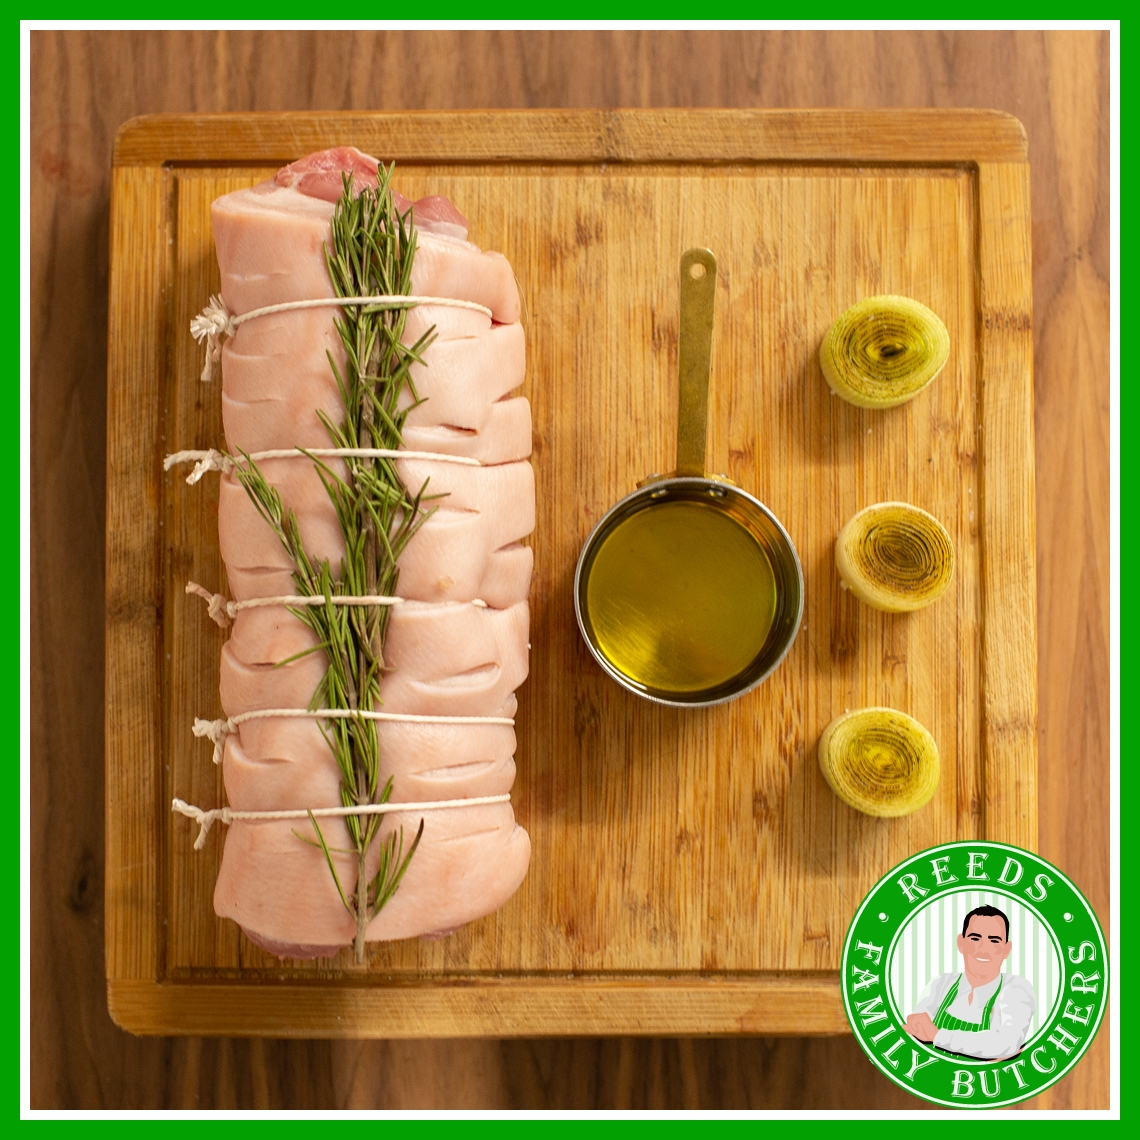 Buy Boned And Rolled Pork Belly online from Reeds Family Butchers